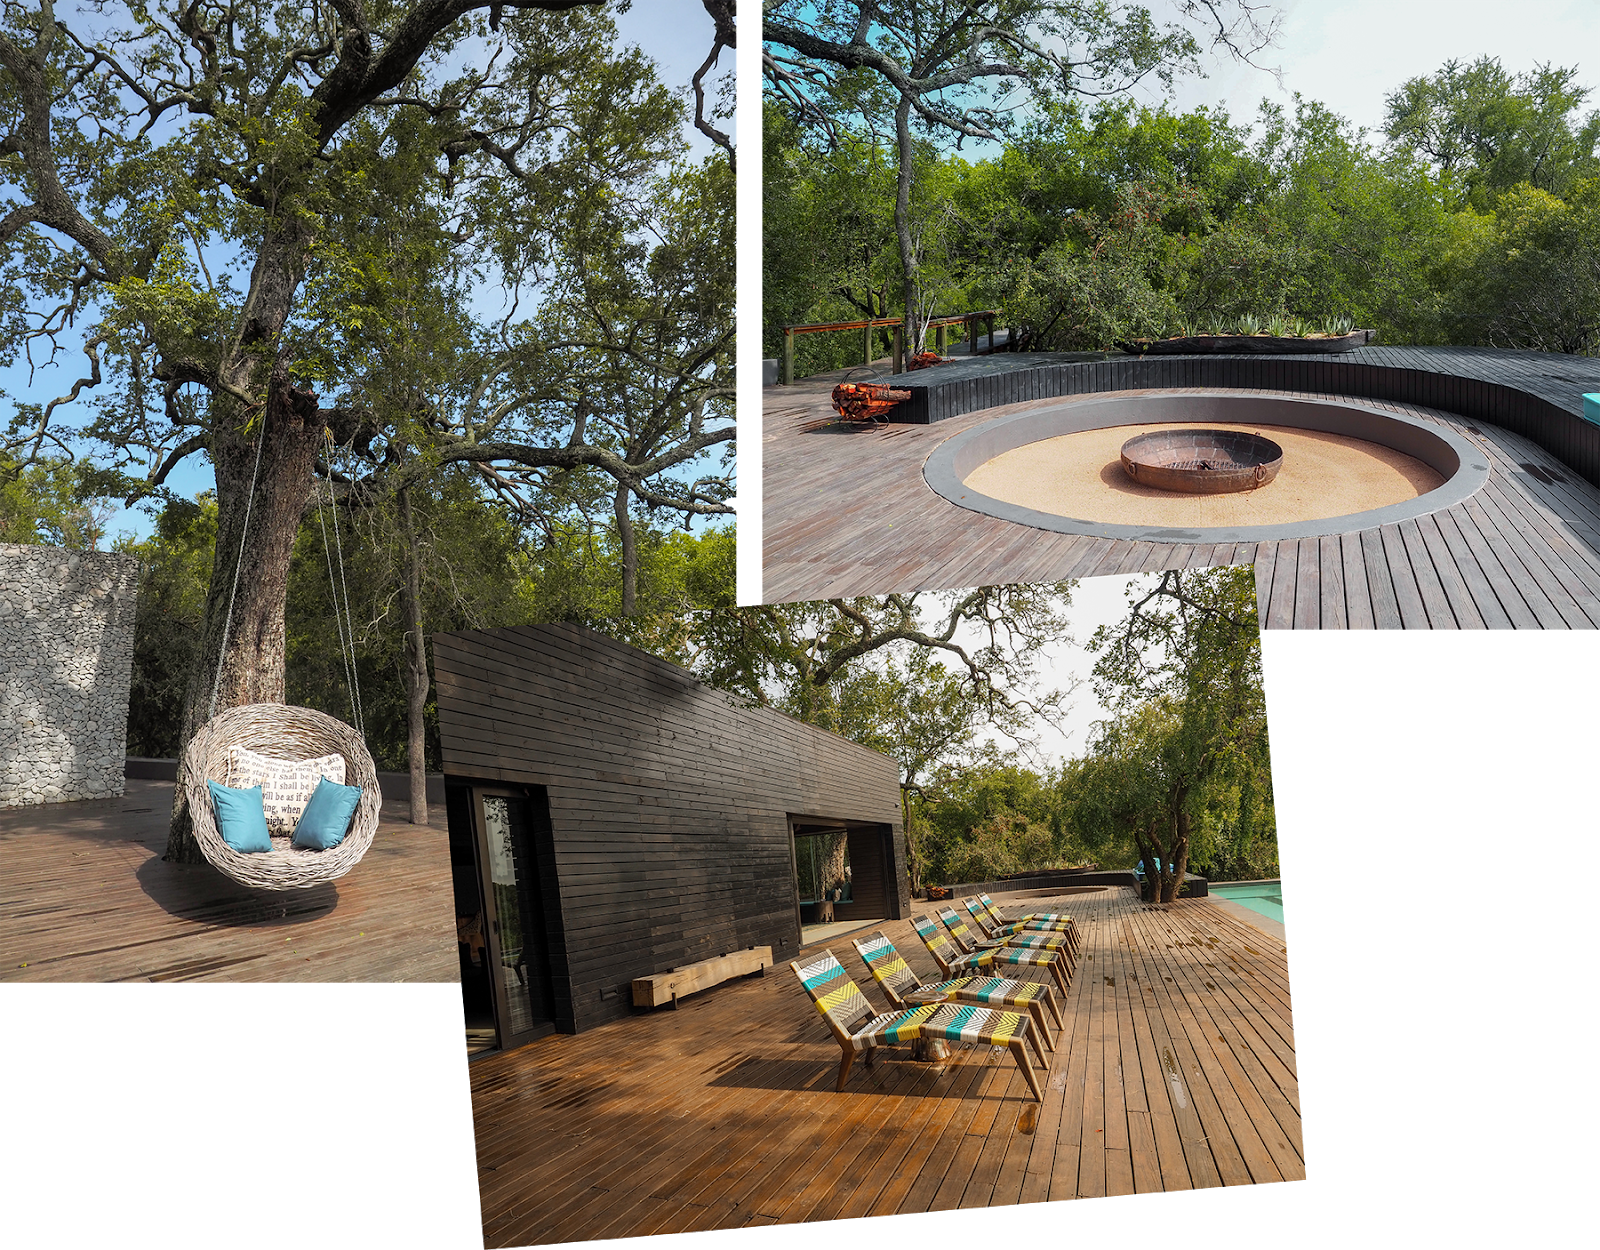 Euriental | luxury travel & style | Silvan Safari Lodge Sabi Sands South Africa